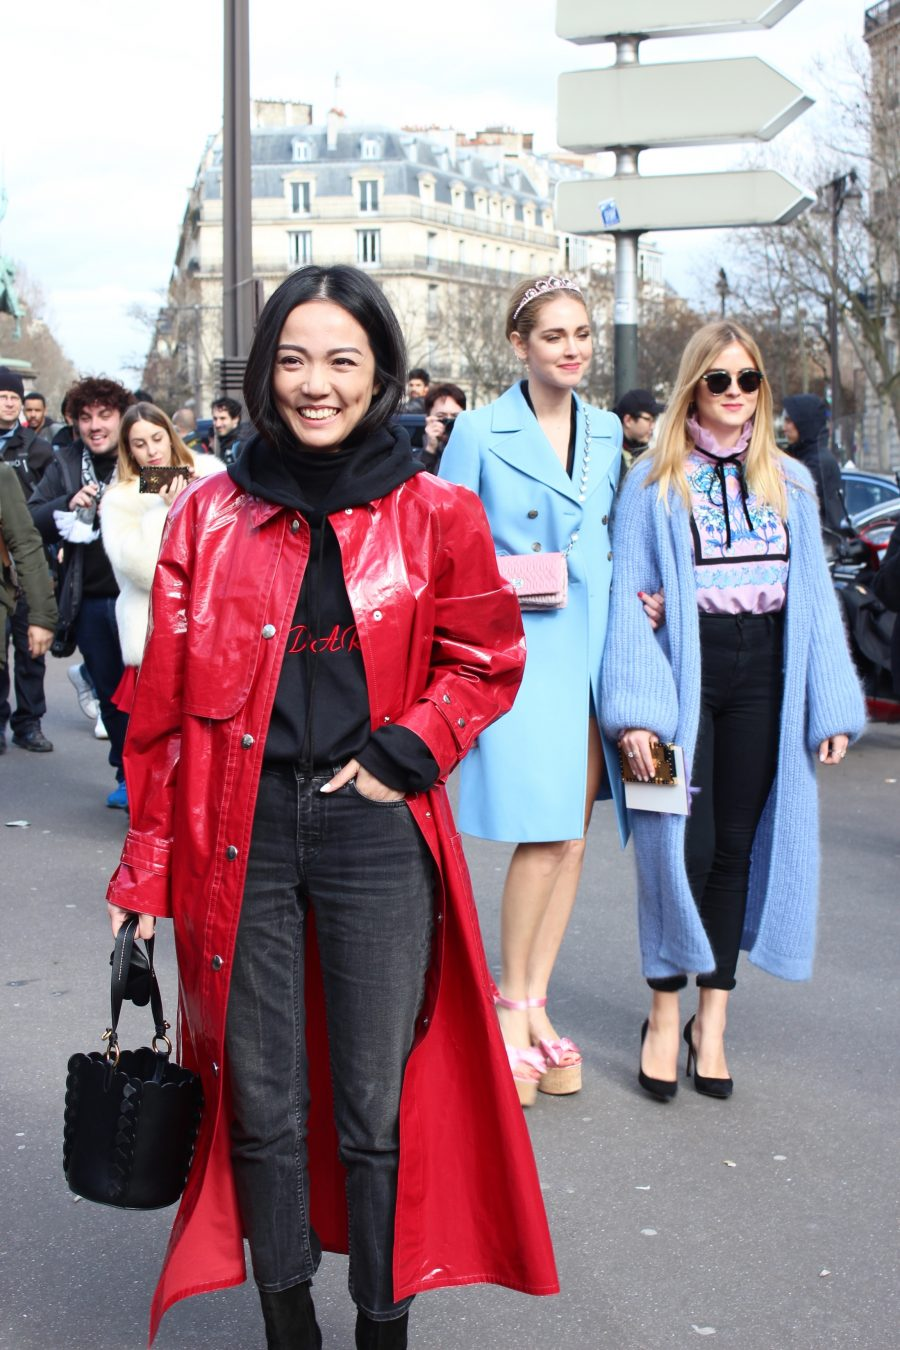 Paris Fashion Week Street Style Looks AH17 Miu Miu Chiara Ferragni